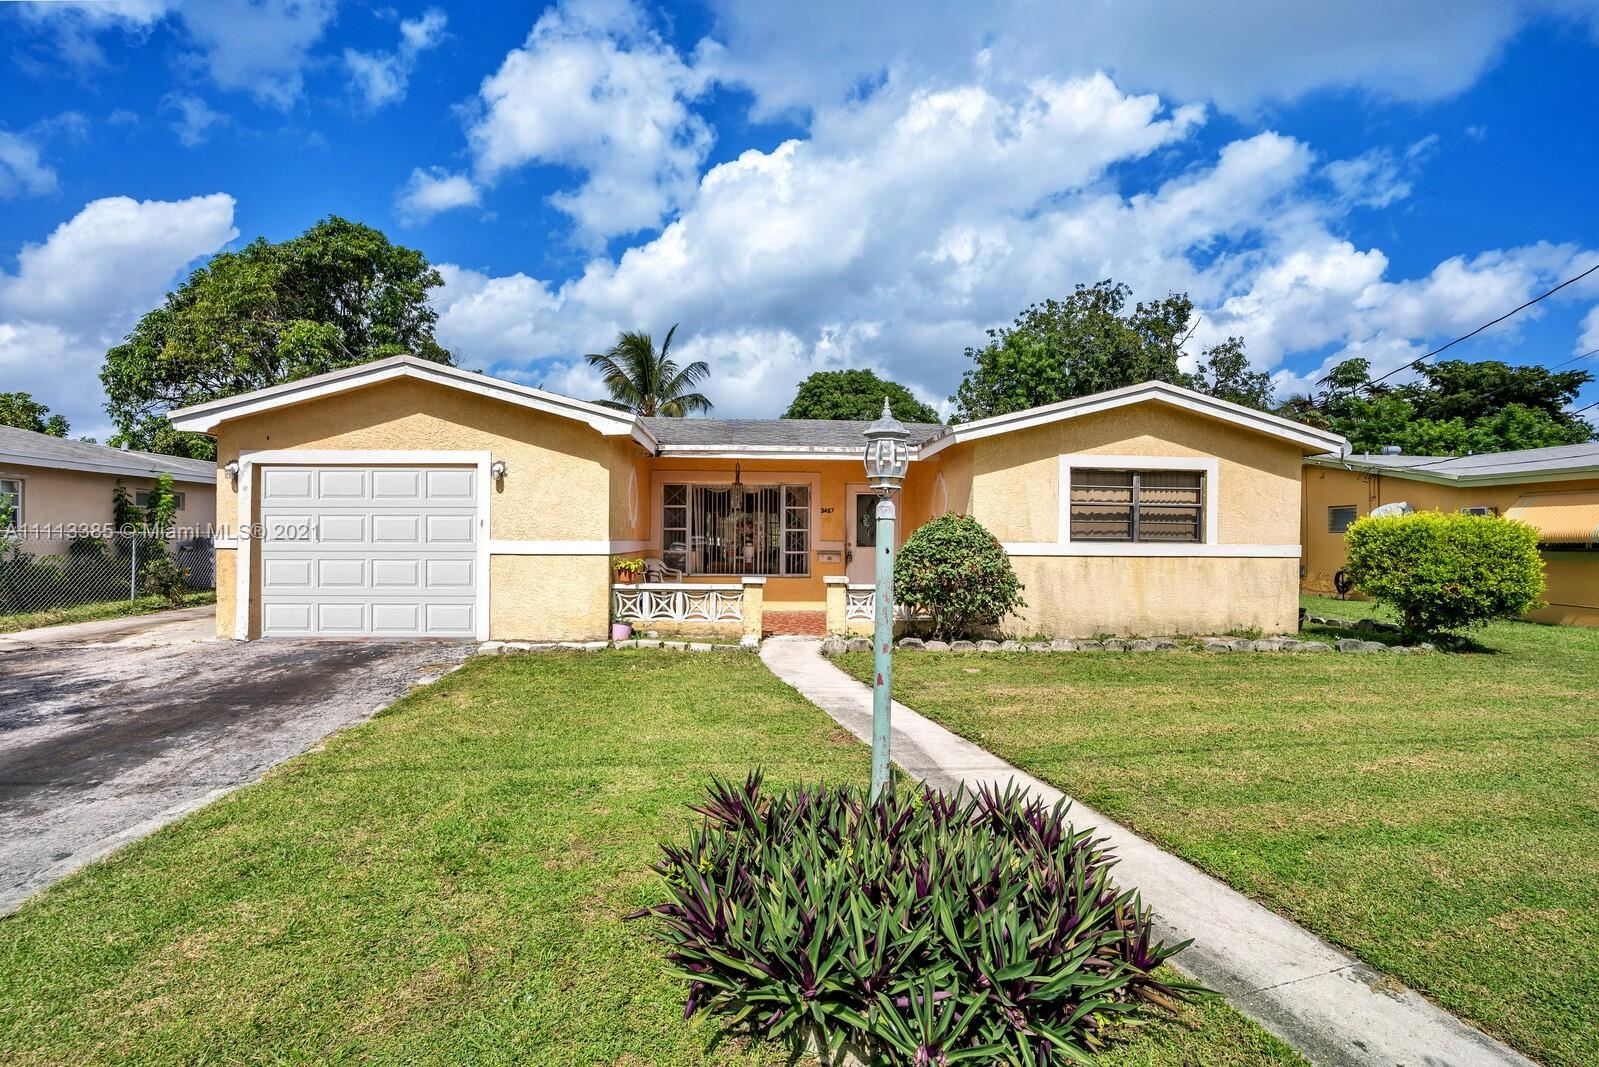 3457 NW 32nd St, Lauderdale Lakes, FL 33309 - #: A11113385